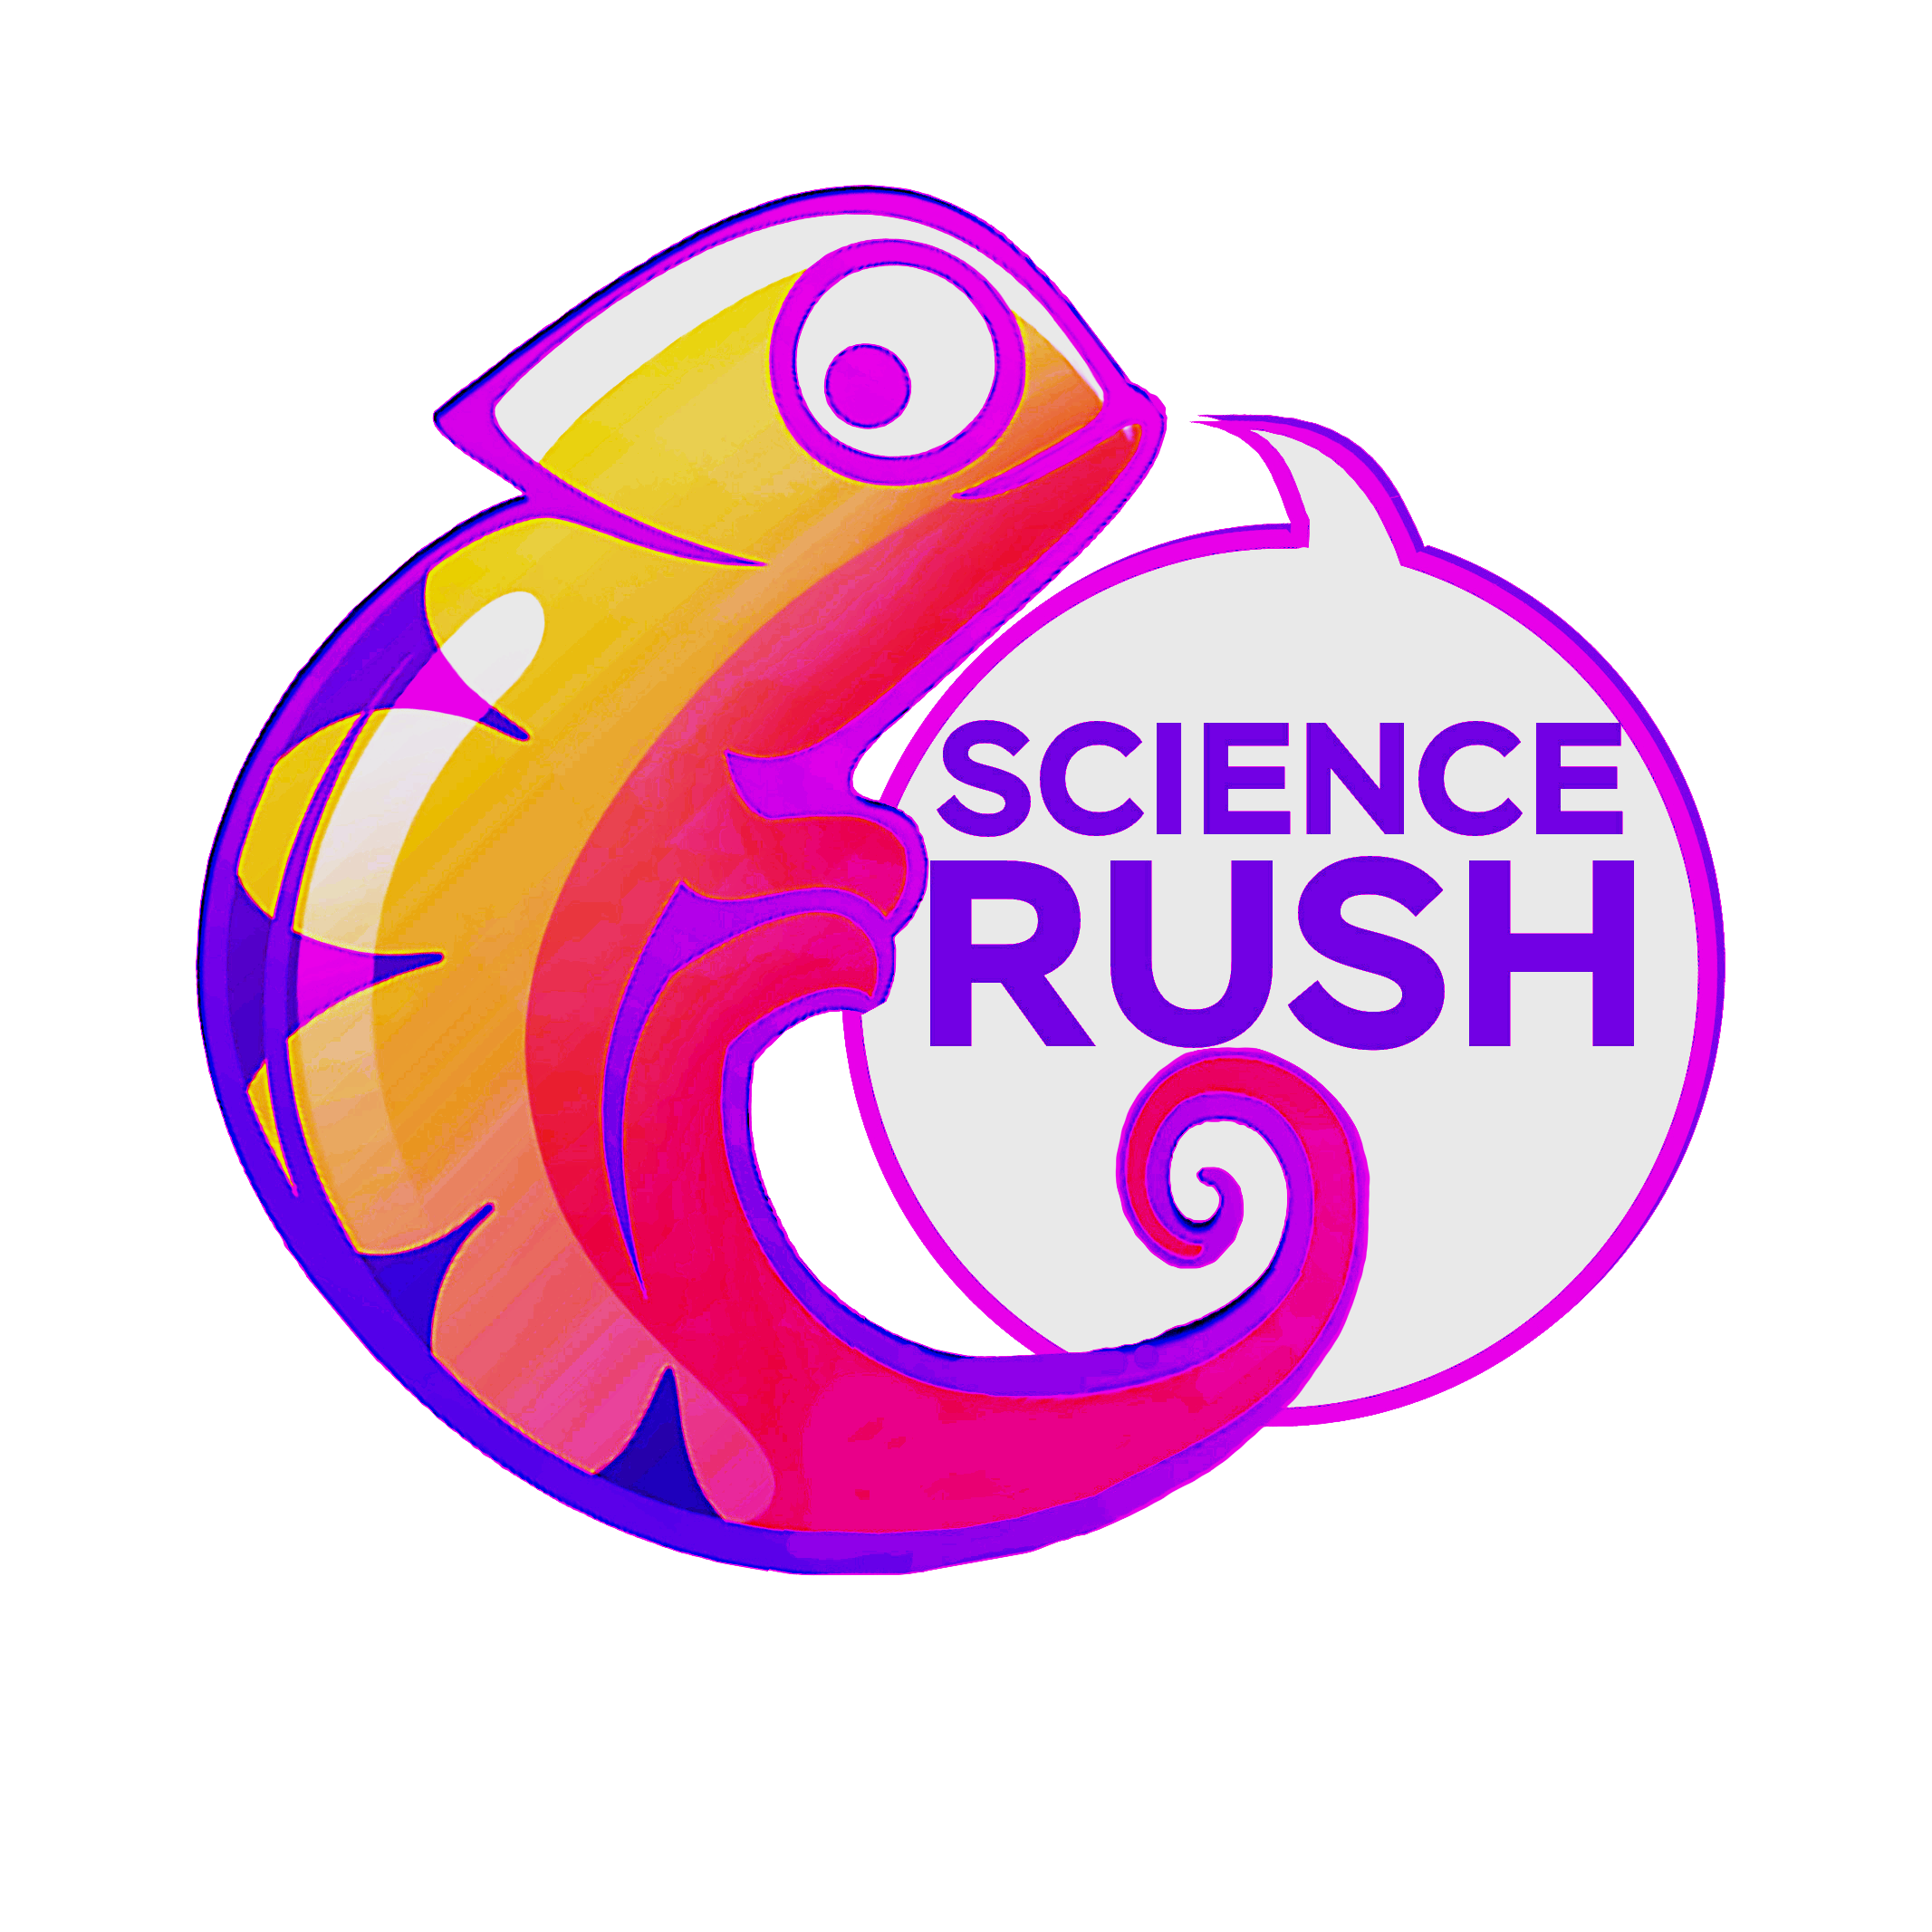 SCIENCE RUSH